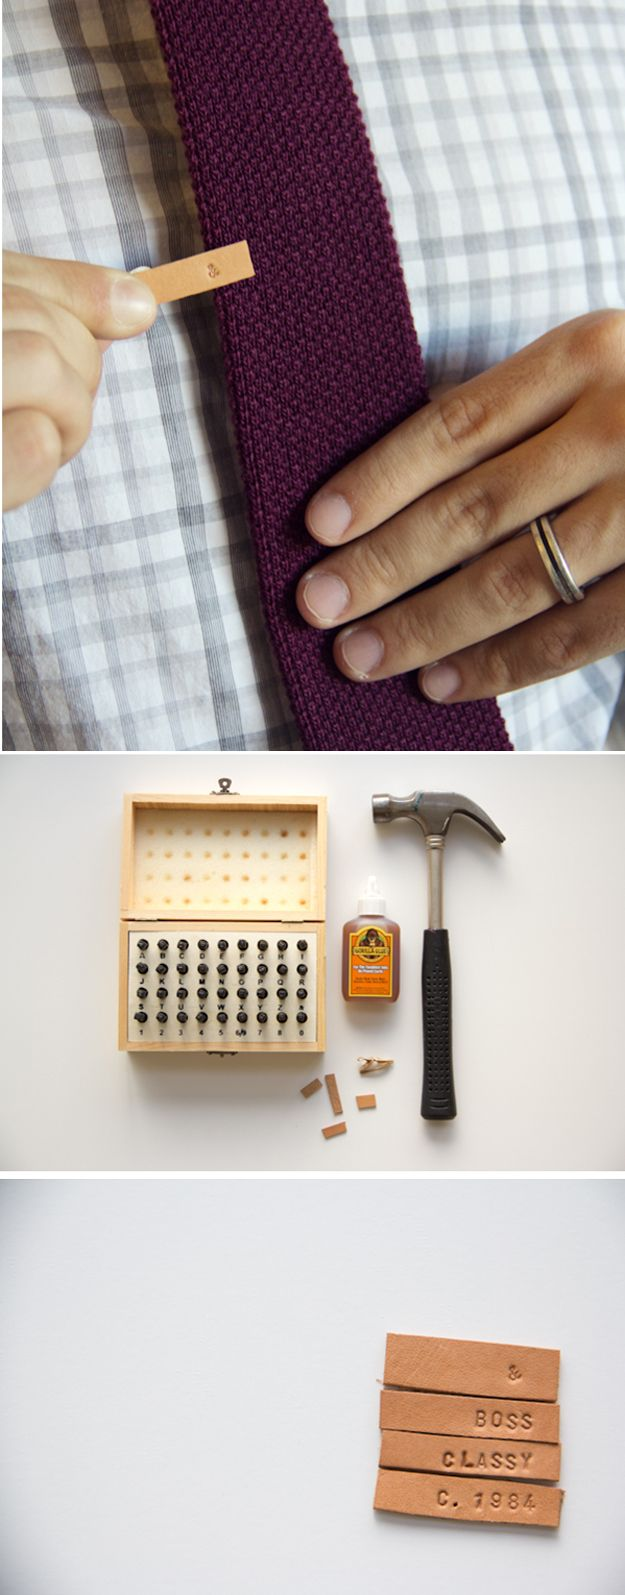 The 25 best cool fathers day gifts ideas on pinterest home made 21 cool diy fathers day gift ideas solutioingenieria Image collections